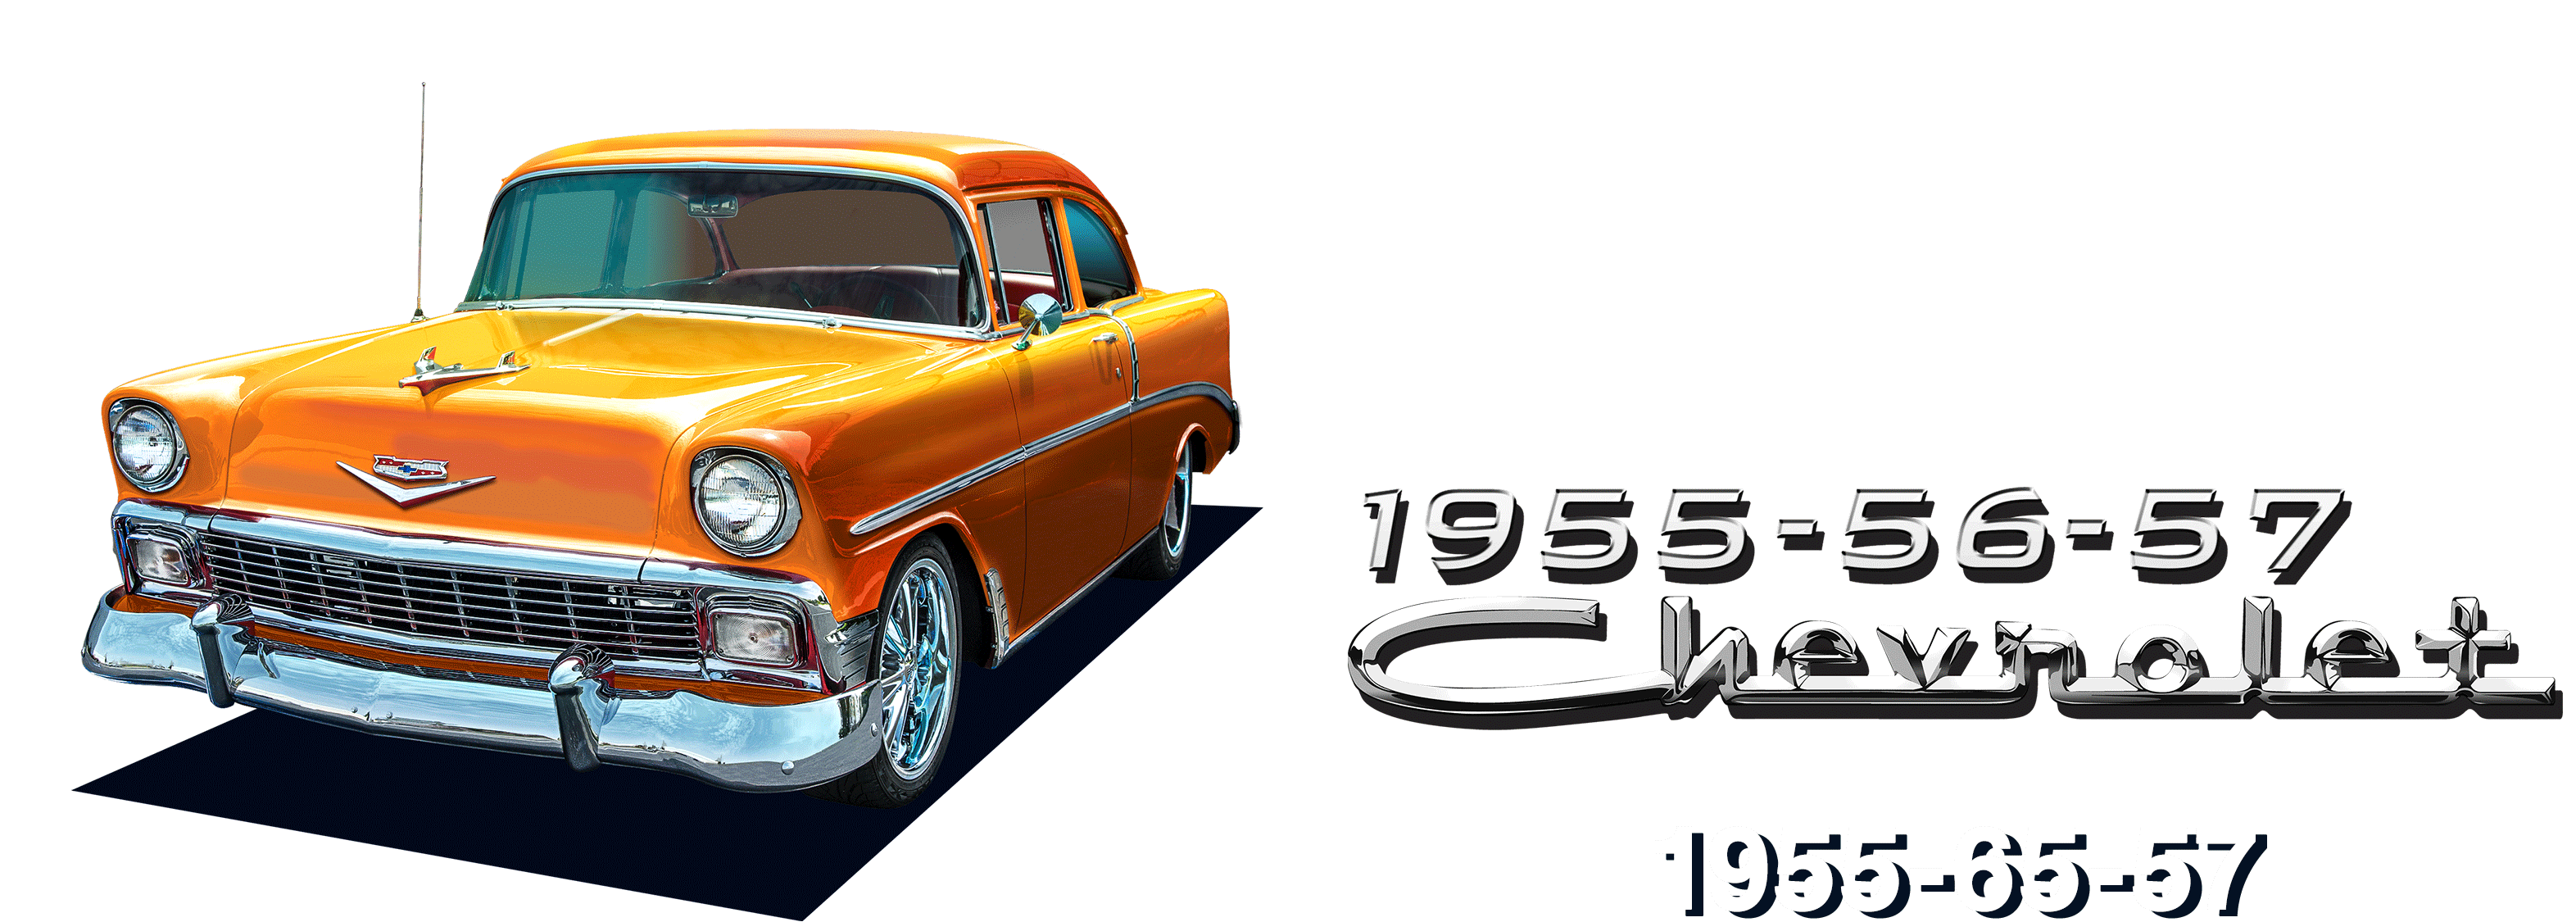 1955, 1956, 1957 Tri-Five Chevy Parts and Accessories